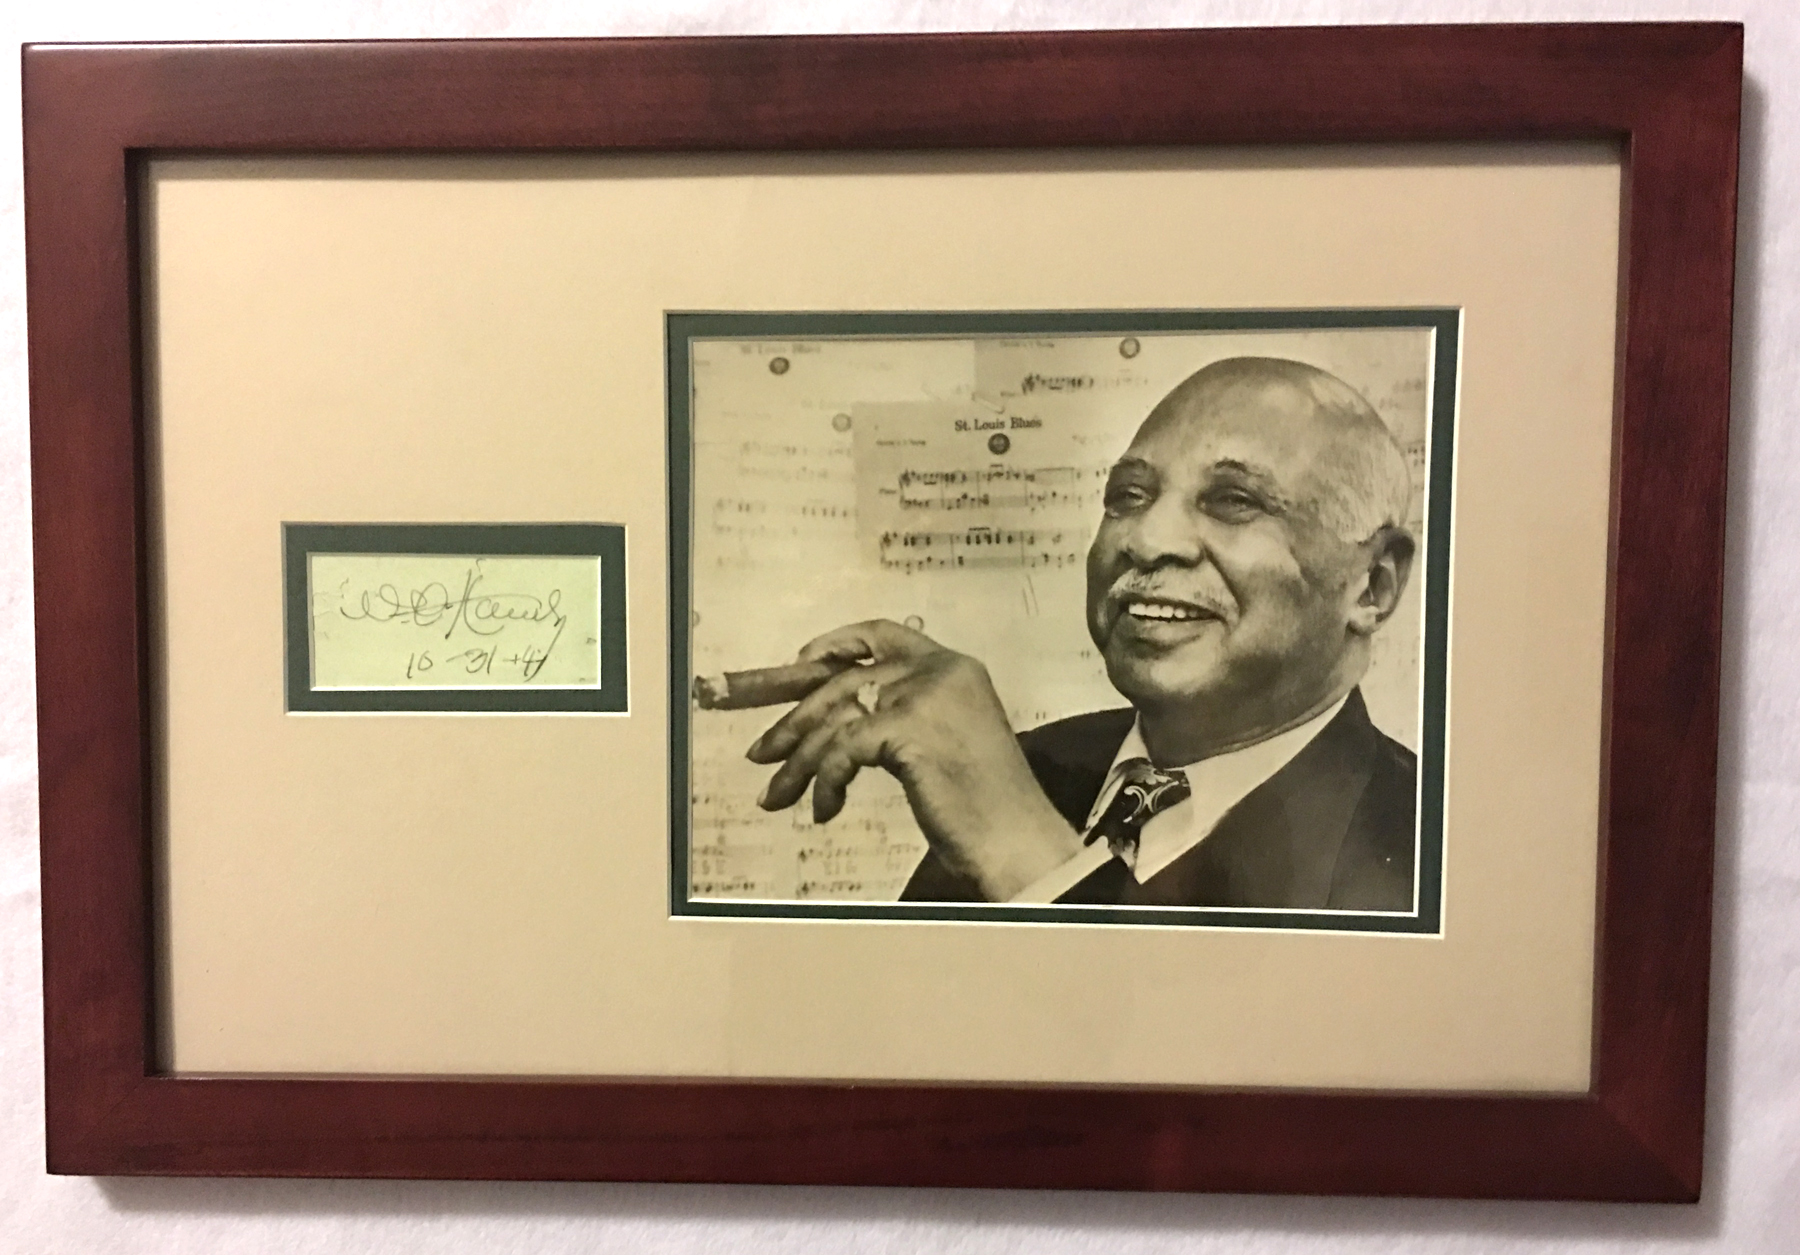 Image for Autograph of W. C. Handy, Framed with Photo